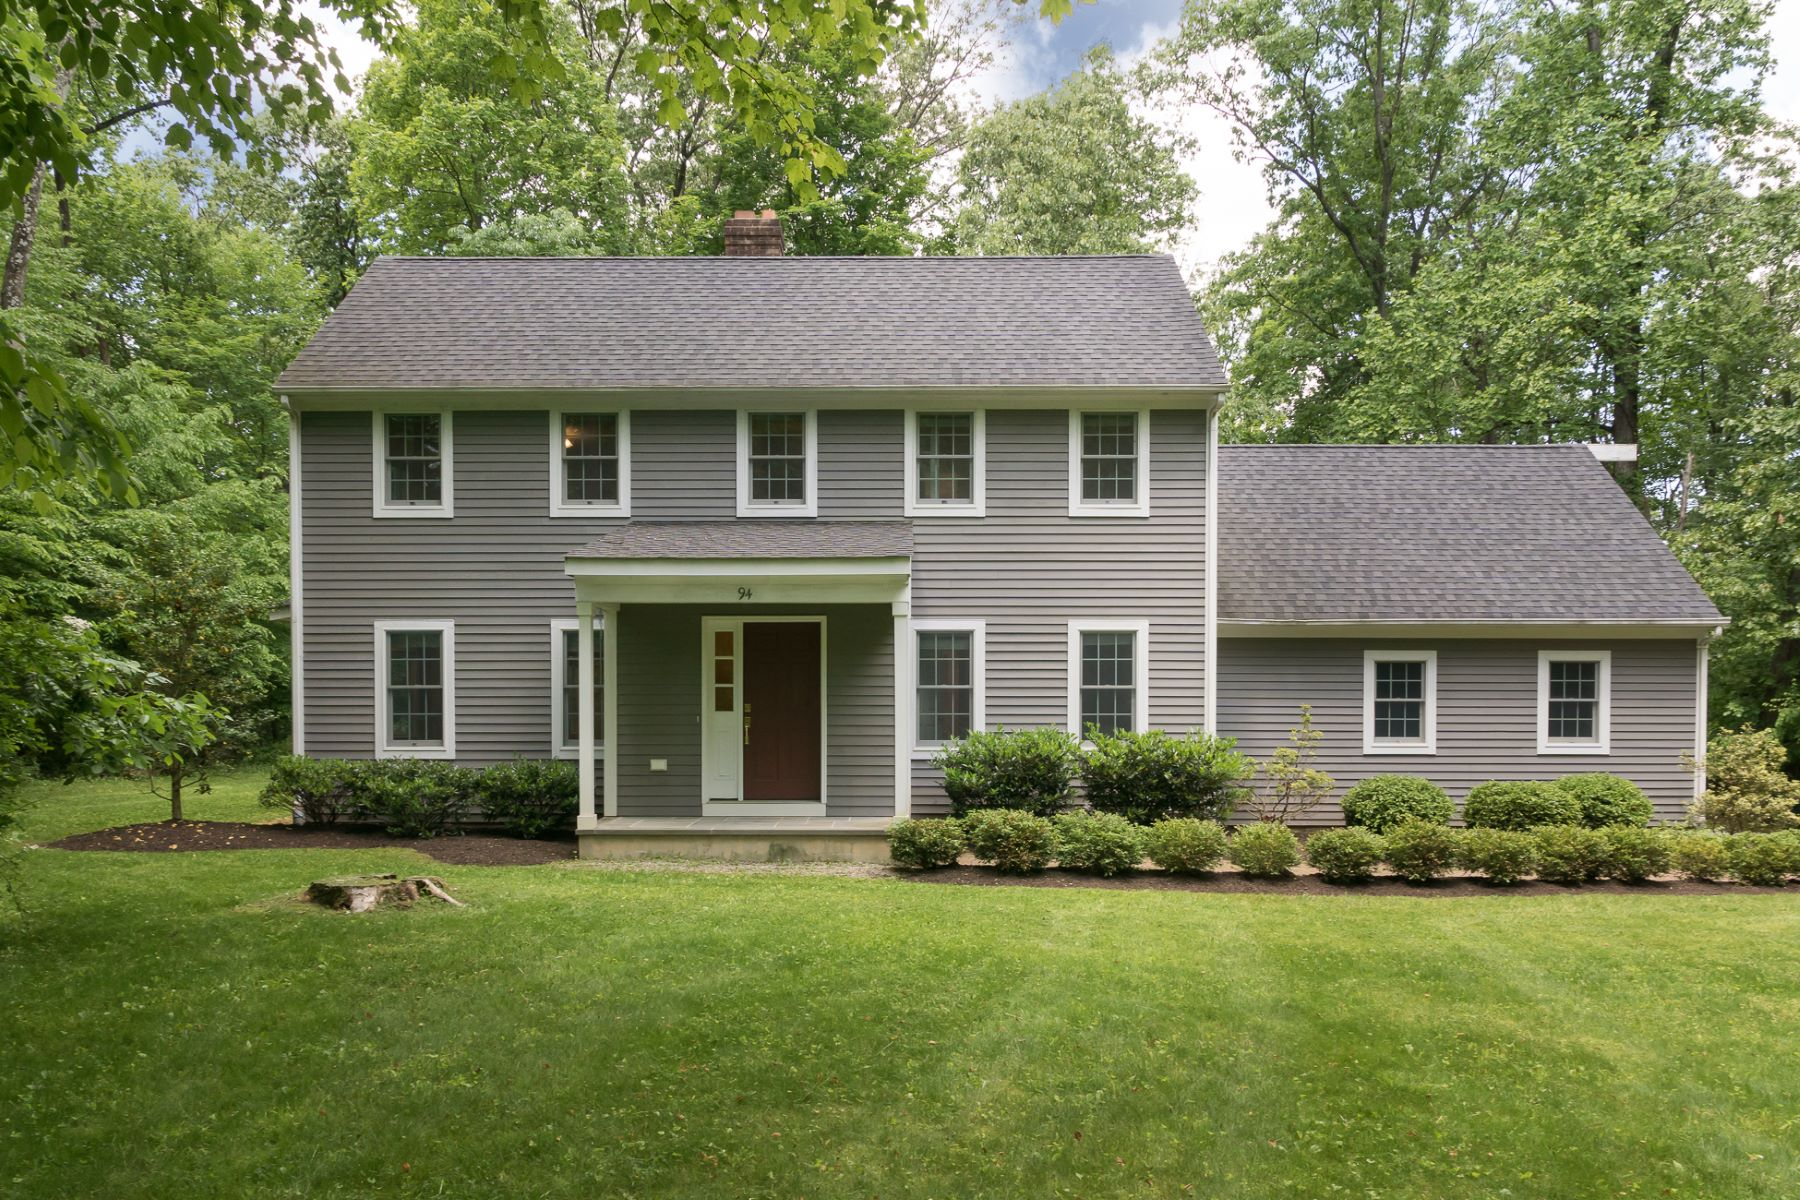 Pretty Home on a Peaceful Princeton Street 94 Ross Stevenson Circle, Princeton, New Jersey 08540 Stati Uniti